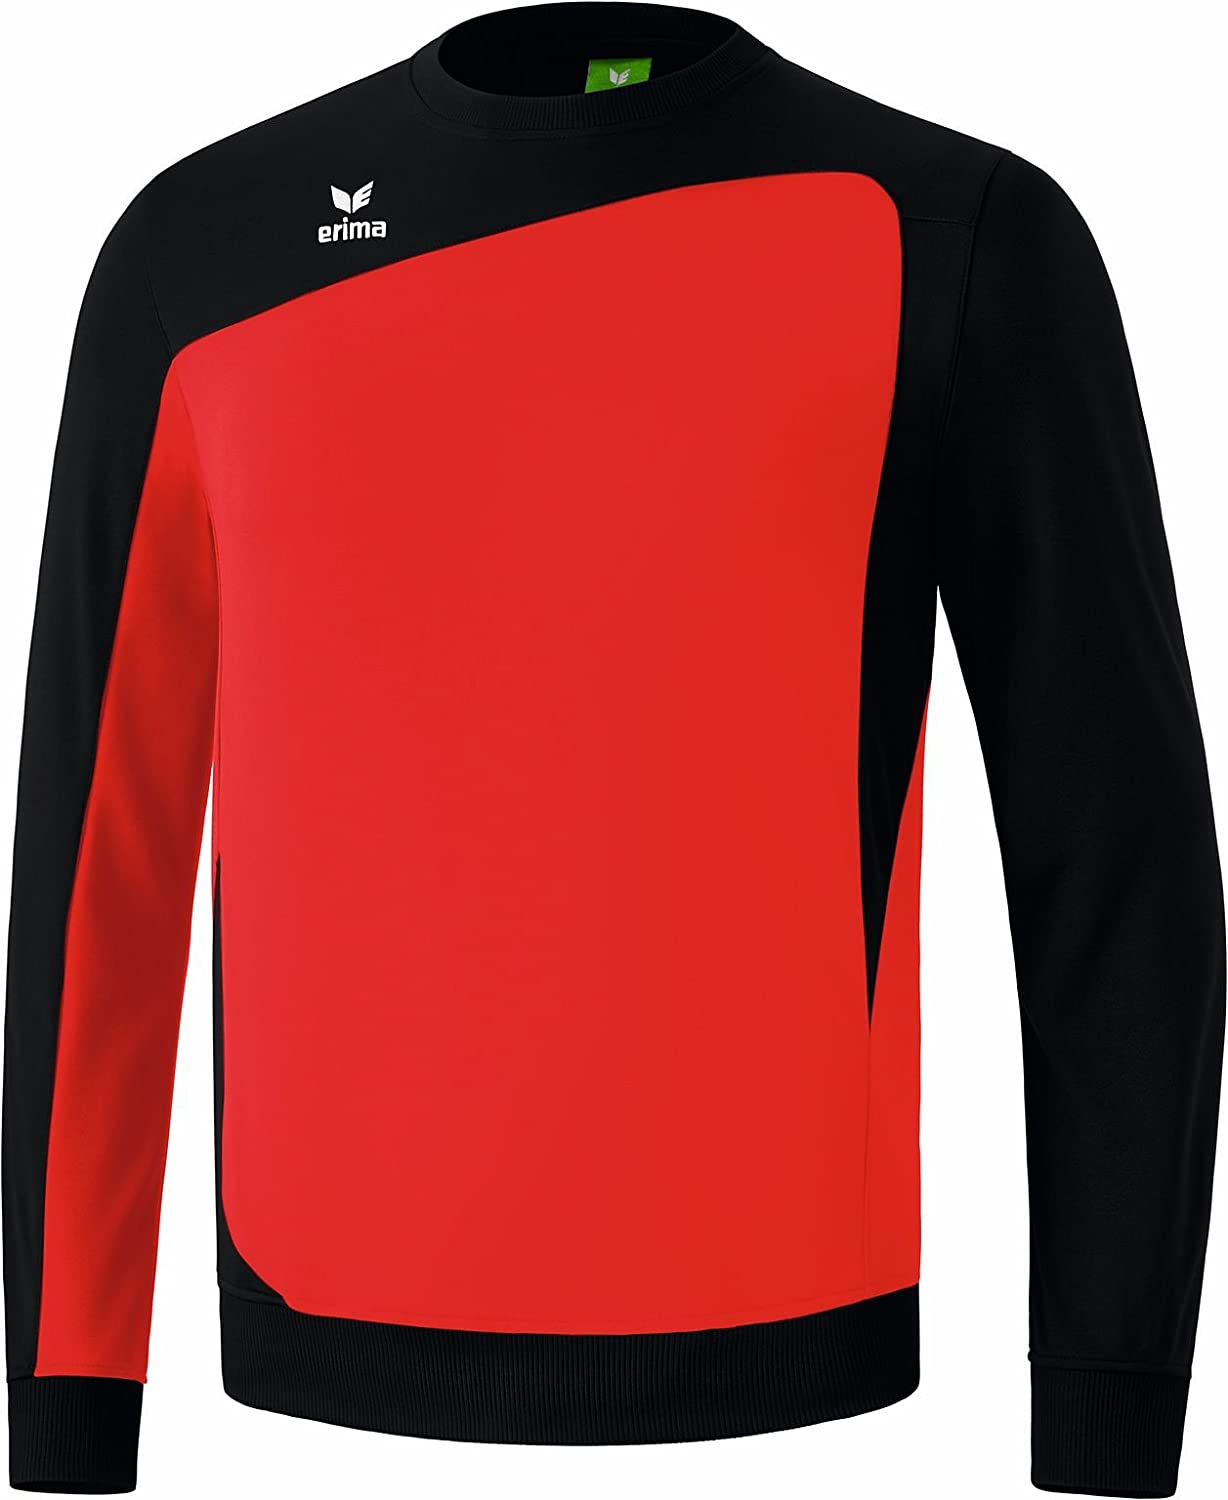 erima Kinder Tops langarm Club 1900 Trainingssweat Rot/Schwarz 107332